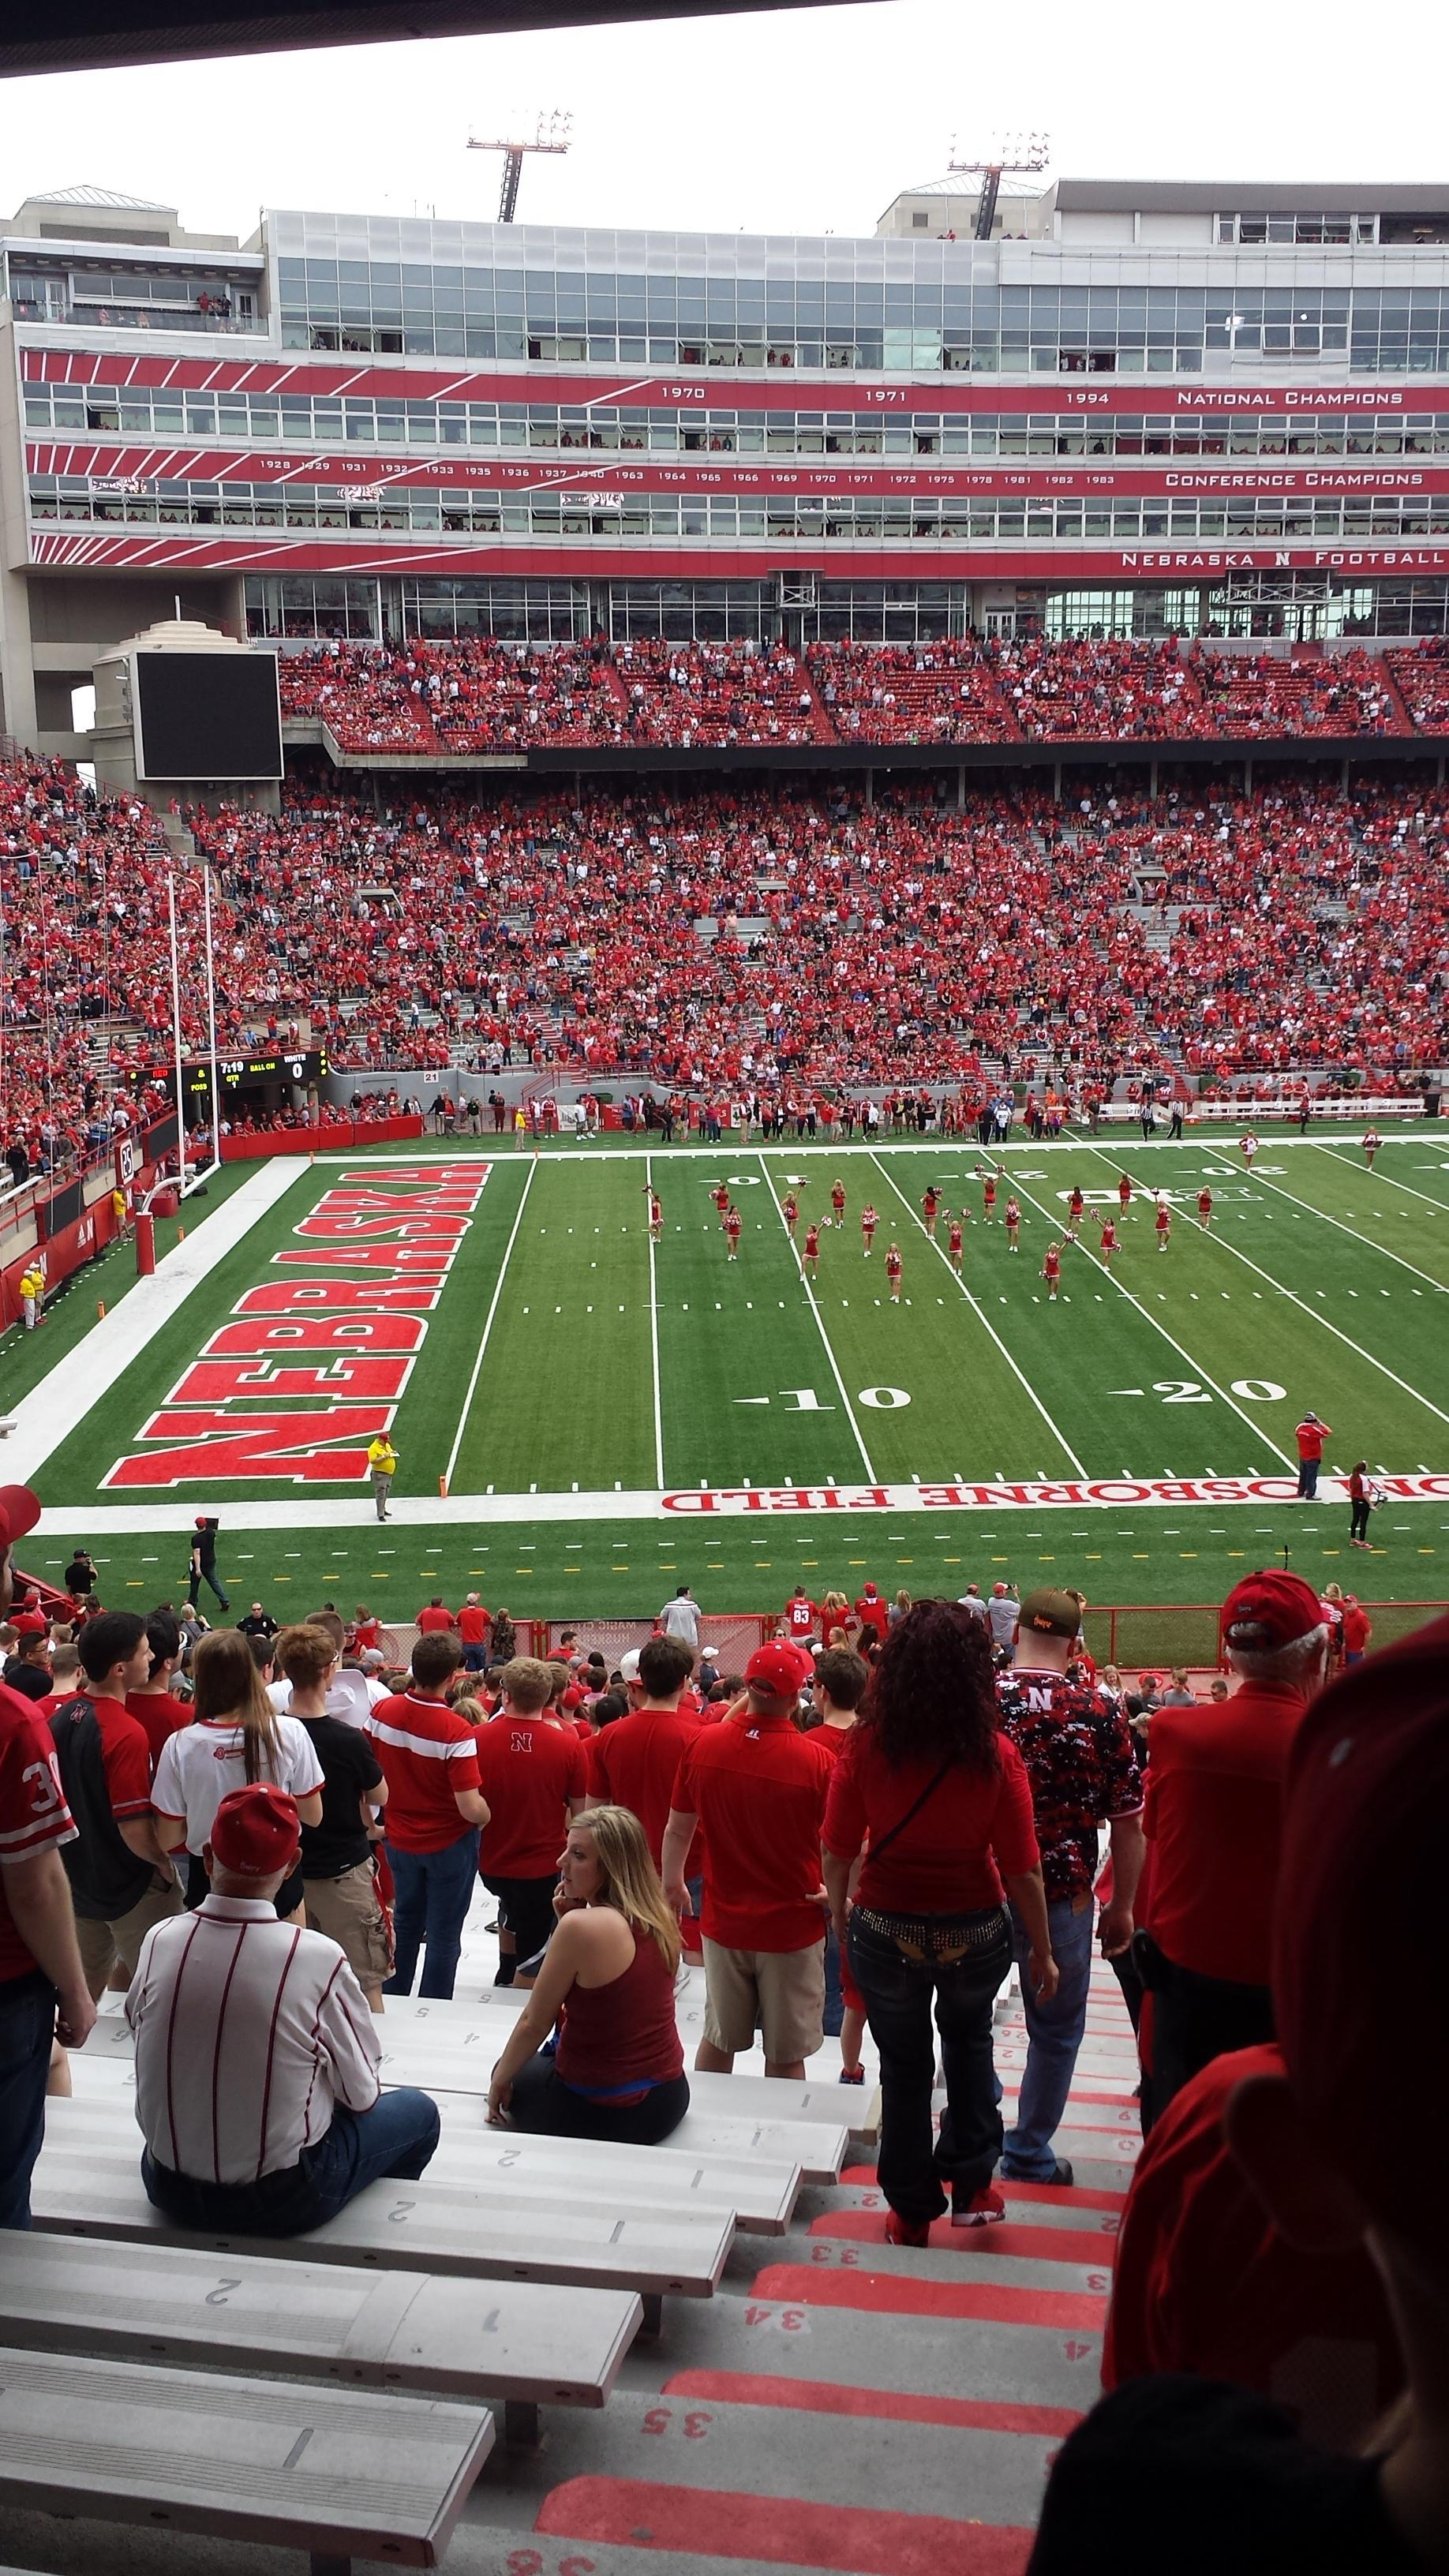 Memorial Stadium (Lincoln) Section 9 Row 40 Seat 24